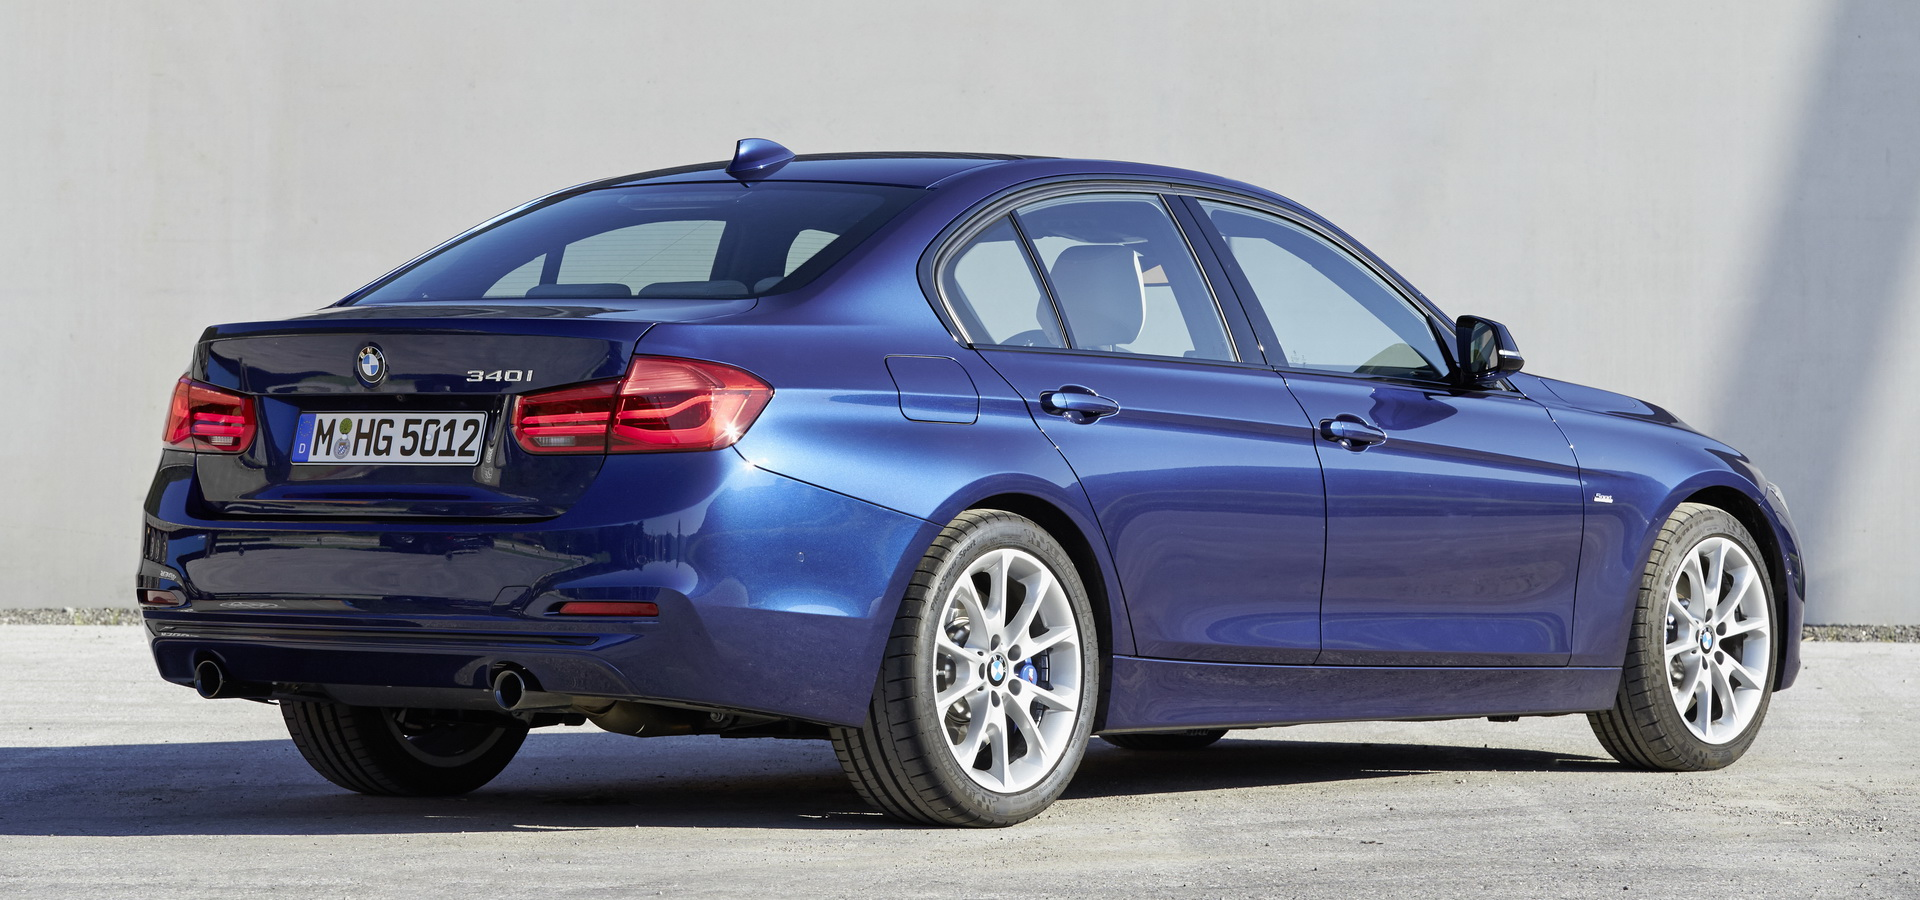 New Bmw 3 Series G20 Vs Its Predecessor F30 So Is Newer